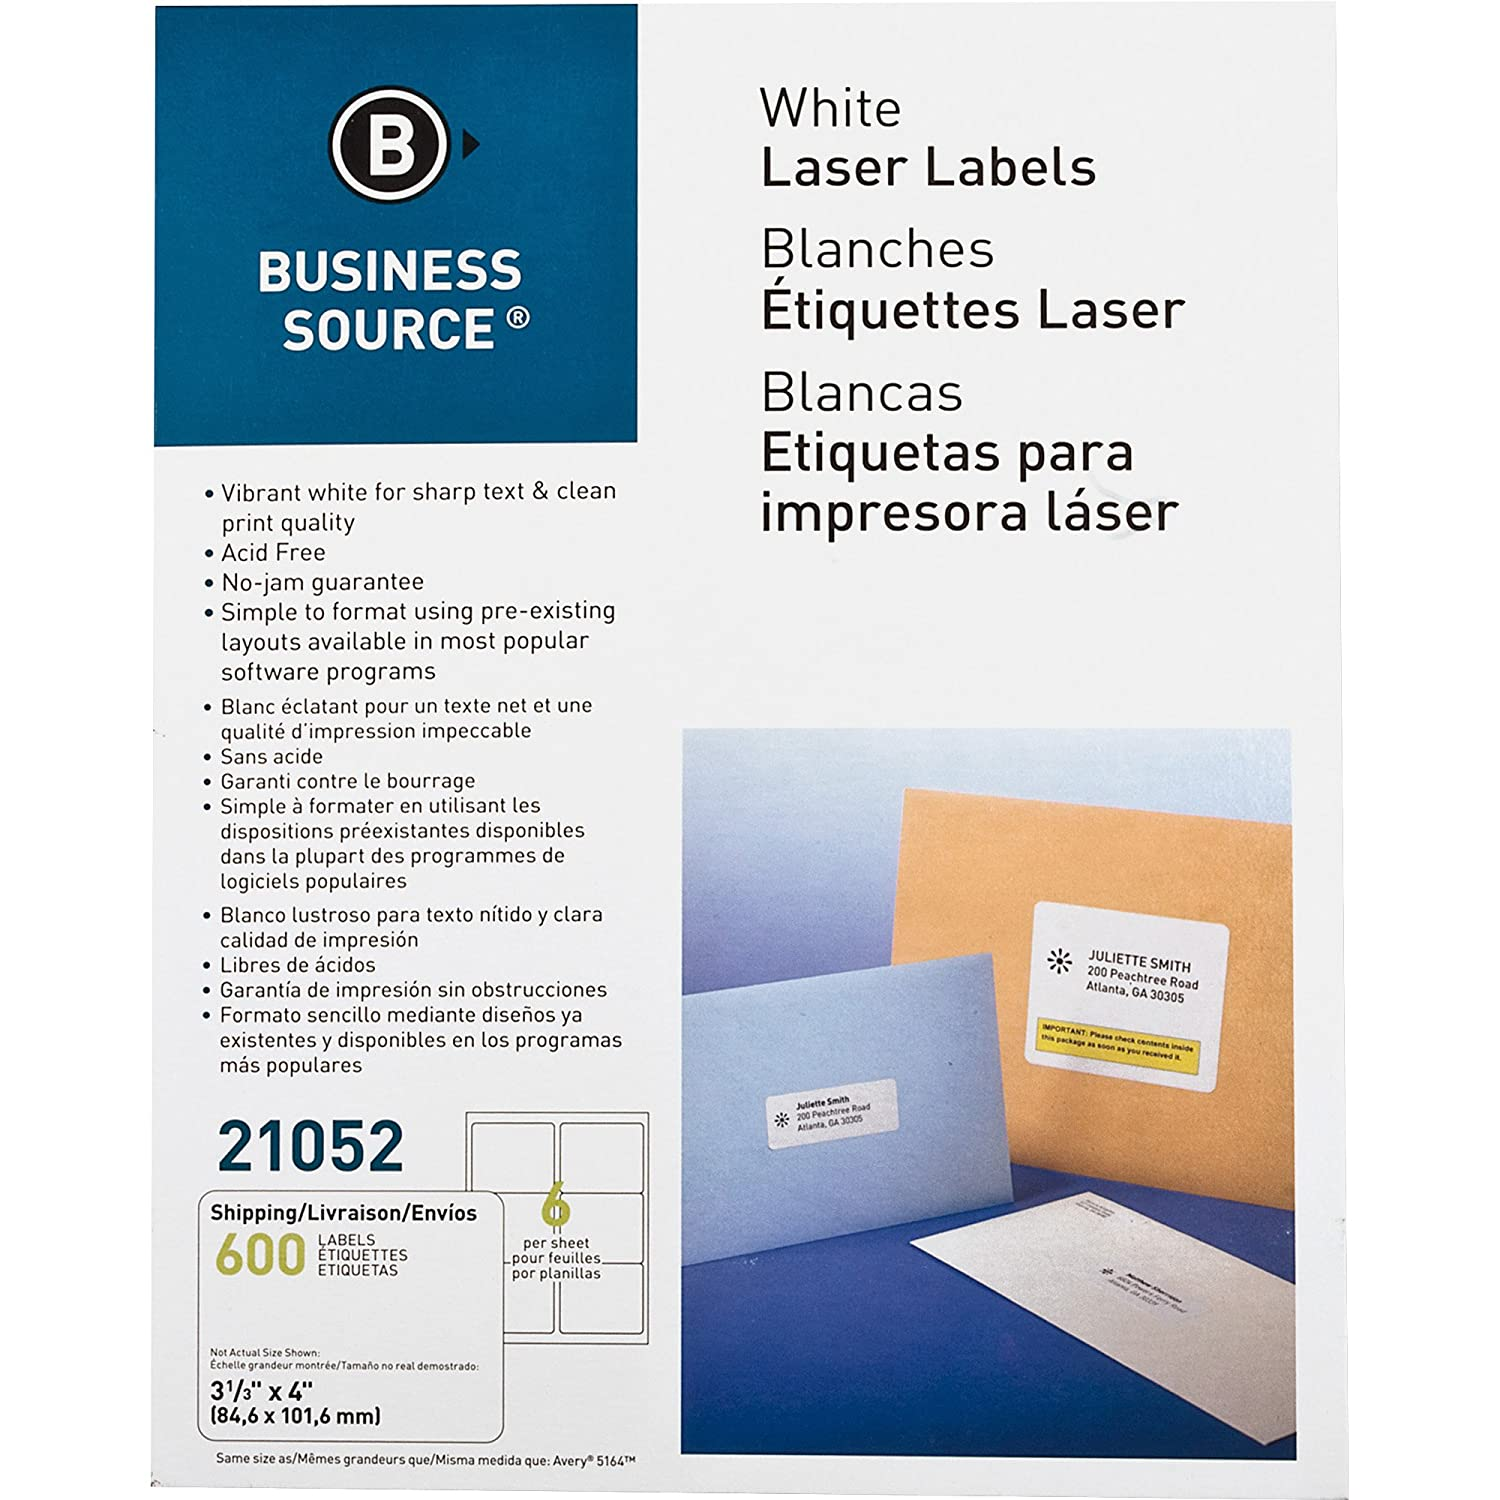 25b1b26b2ff0 Business Source White Laser Shipping Labels - Pack of 600 (21052)